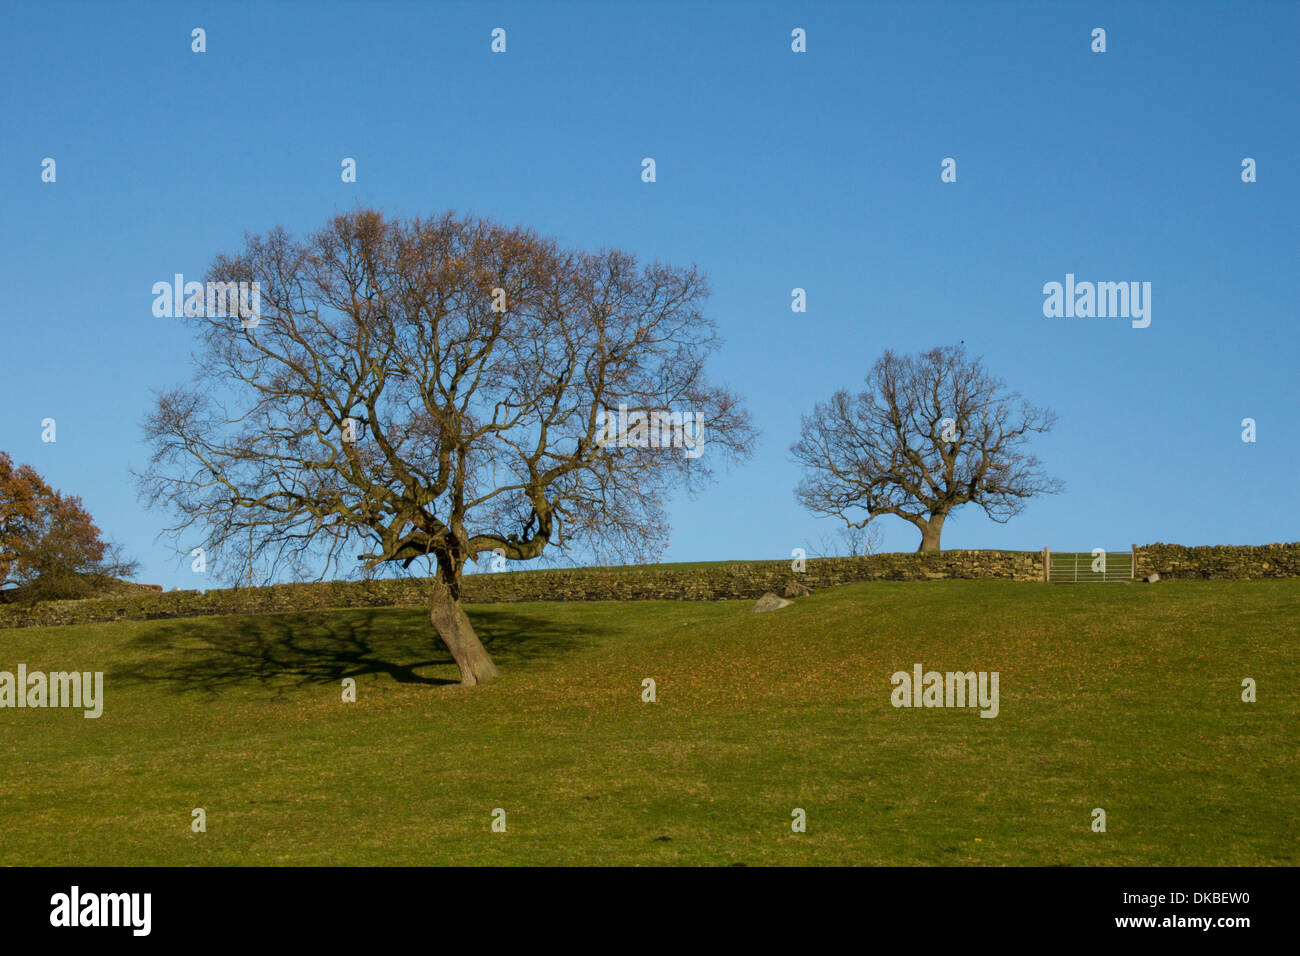 Bare trees across Yorkshire fields, with the traditional and beautiful local stonewalls running through the grazing field. - Stock Image